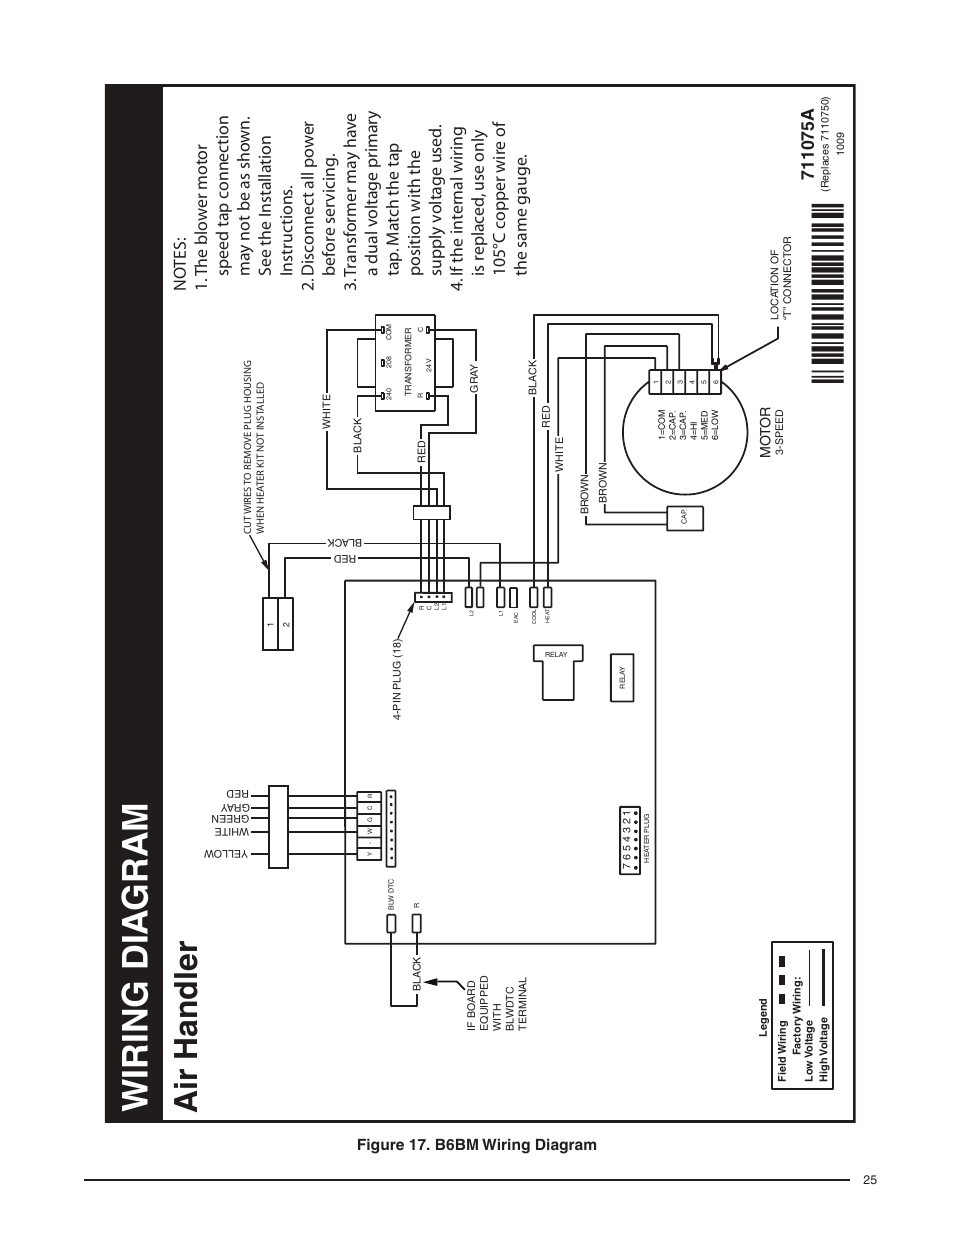 related with reznor gas hanging heater wiring diagram